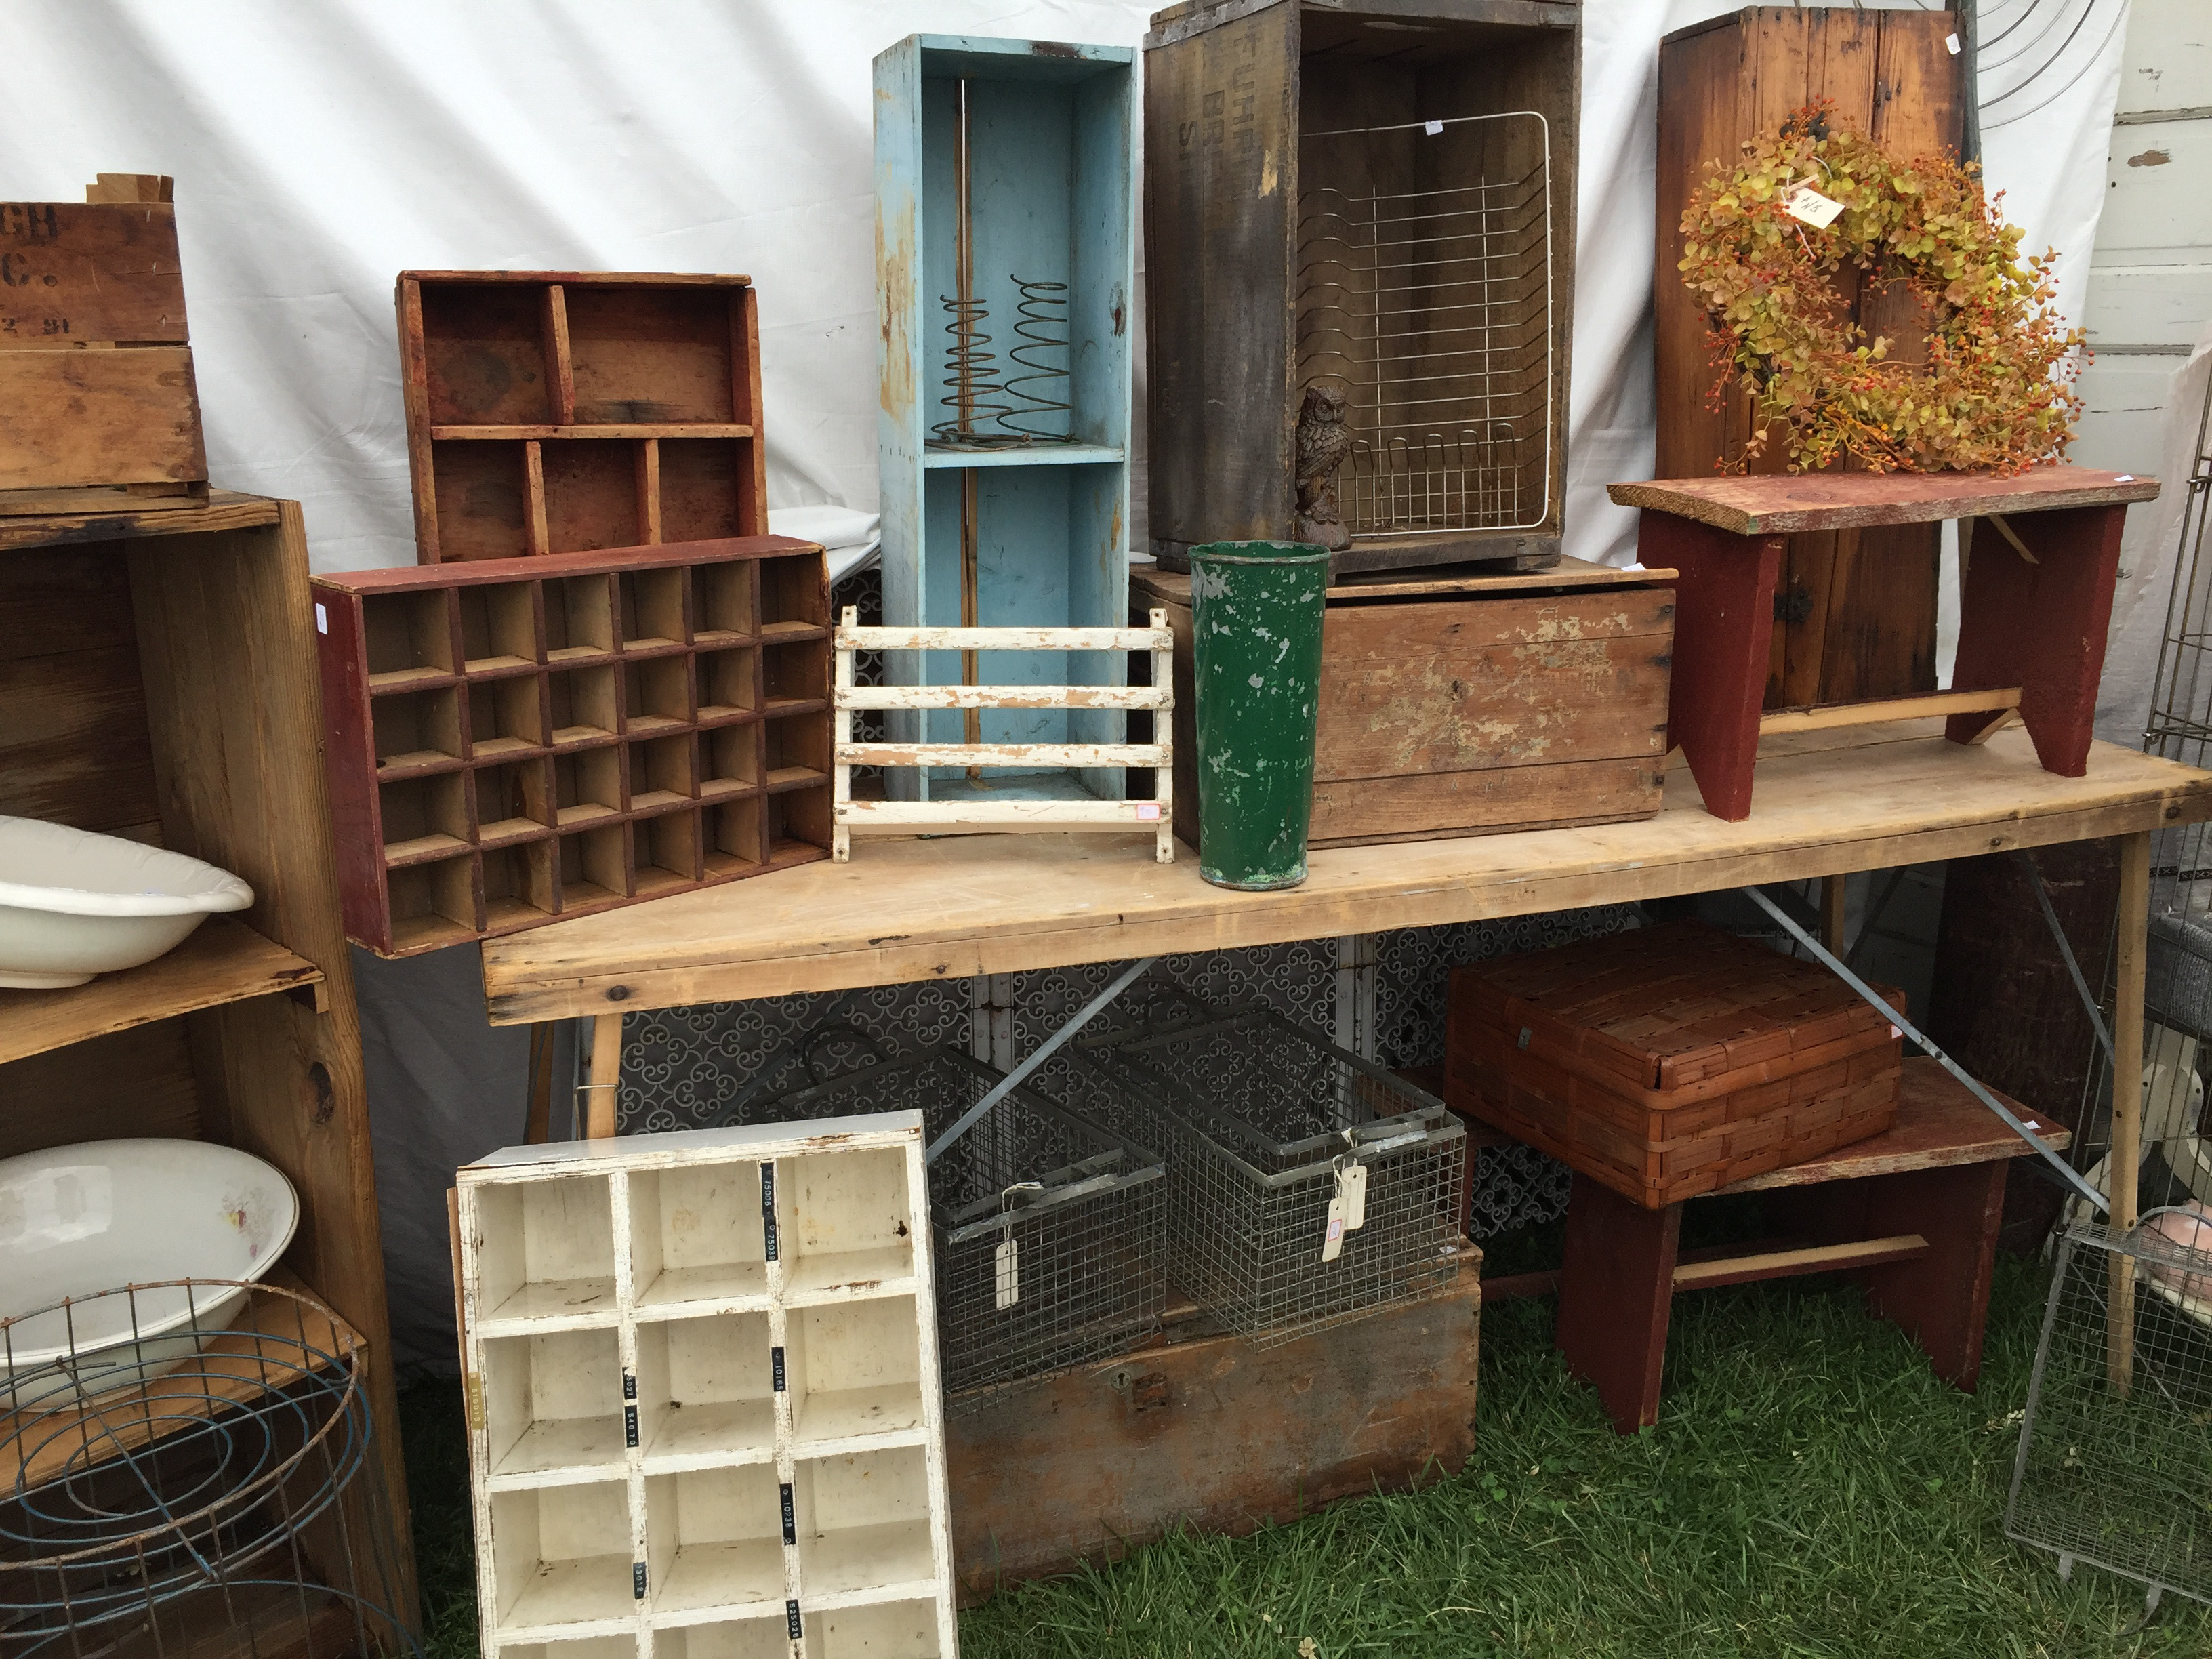 original_caughey-melissacaughey-country-living-fair-ohio-2016-9